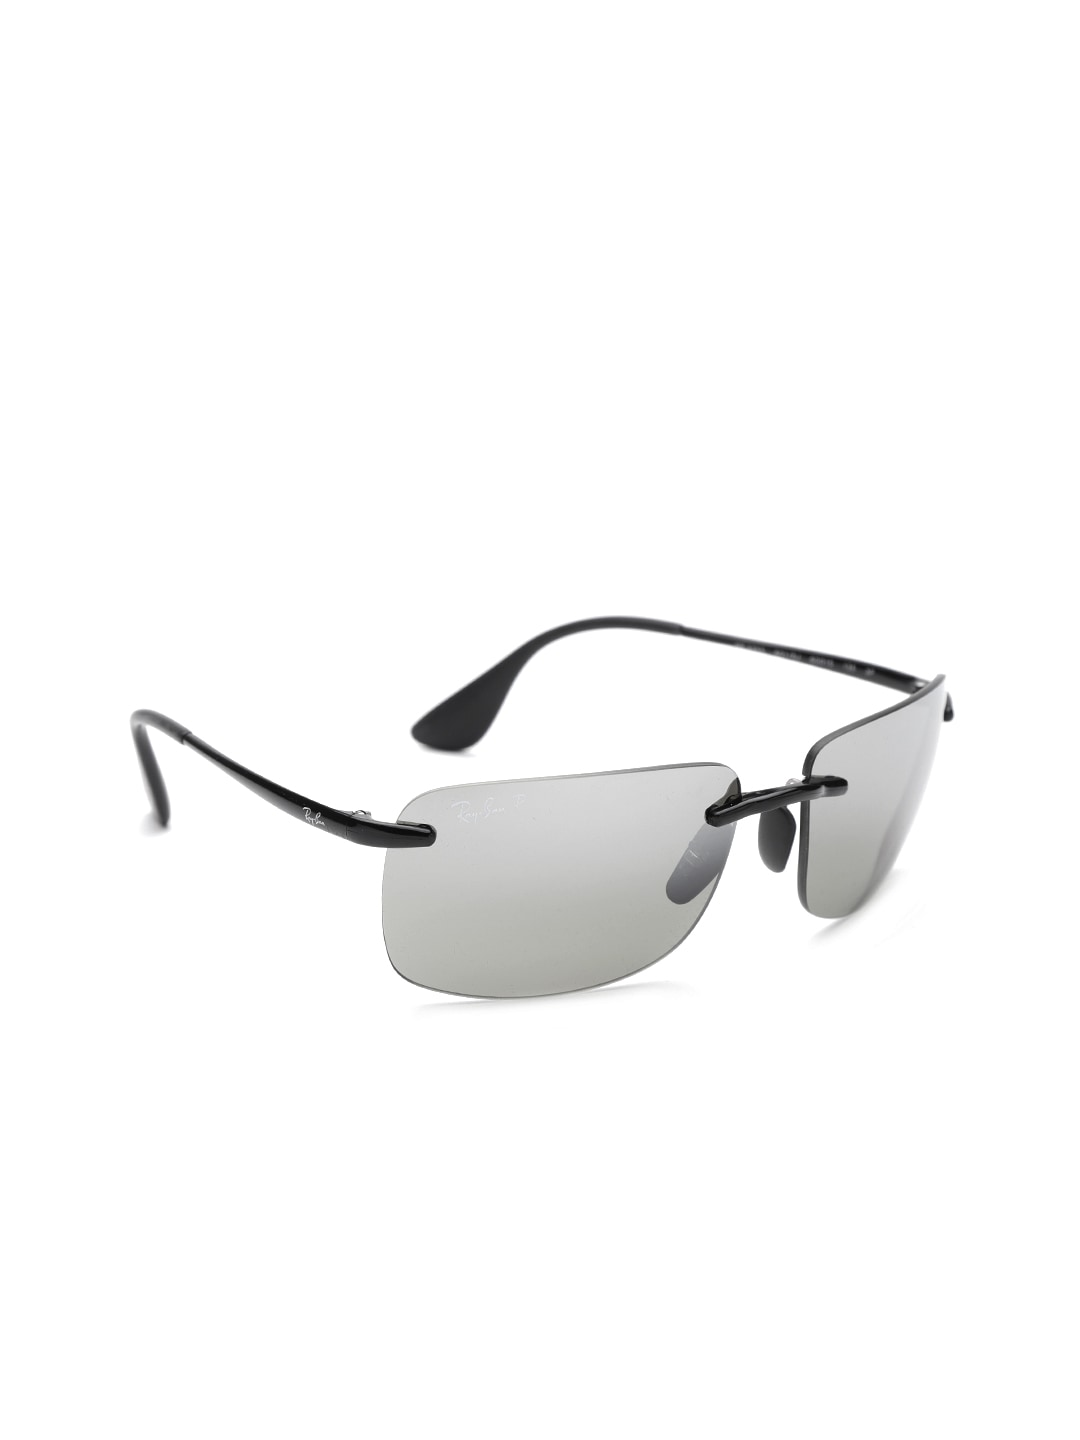 8c0be24597 Ray Ban Sunglasses Casual Shoes - Buy Ray Ban Sunglasses Casual Shoes  online in India